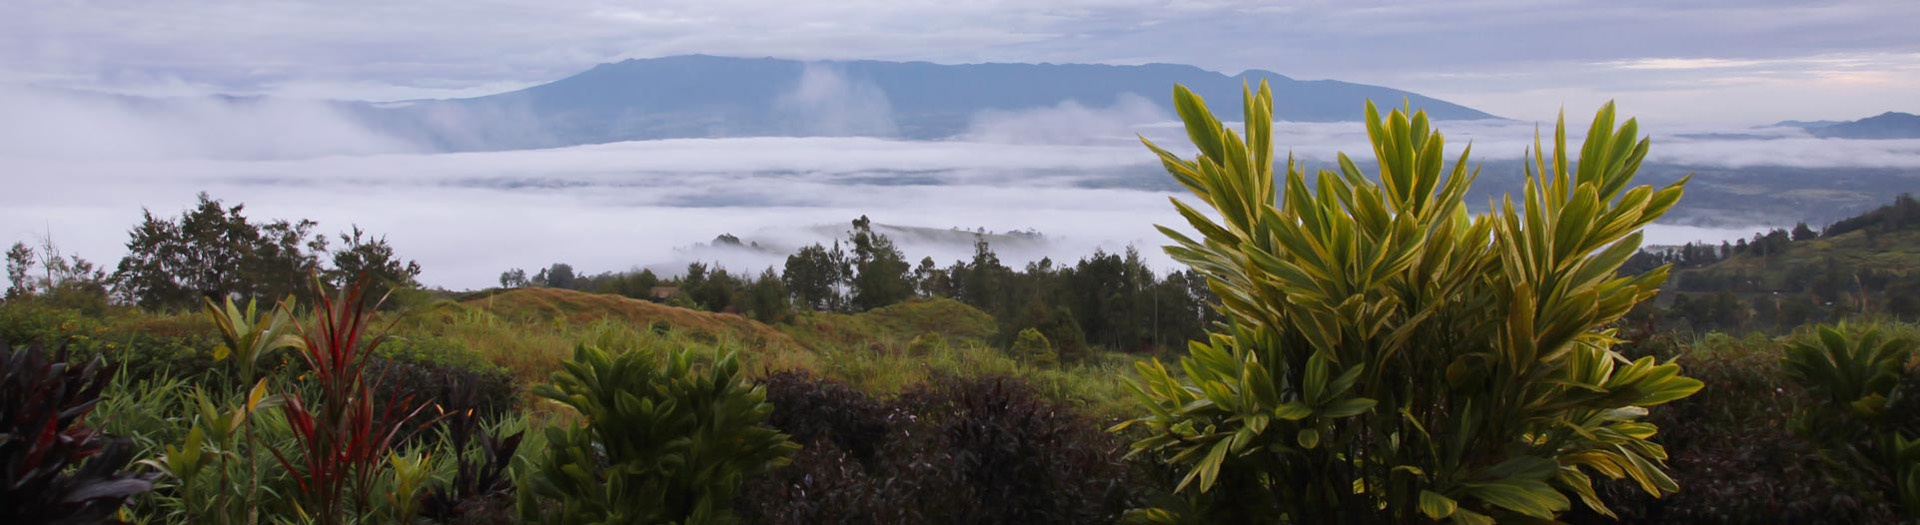 Wahgi Valley & the Mount Hagen, the heart of the Papua New Guinean highlands